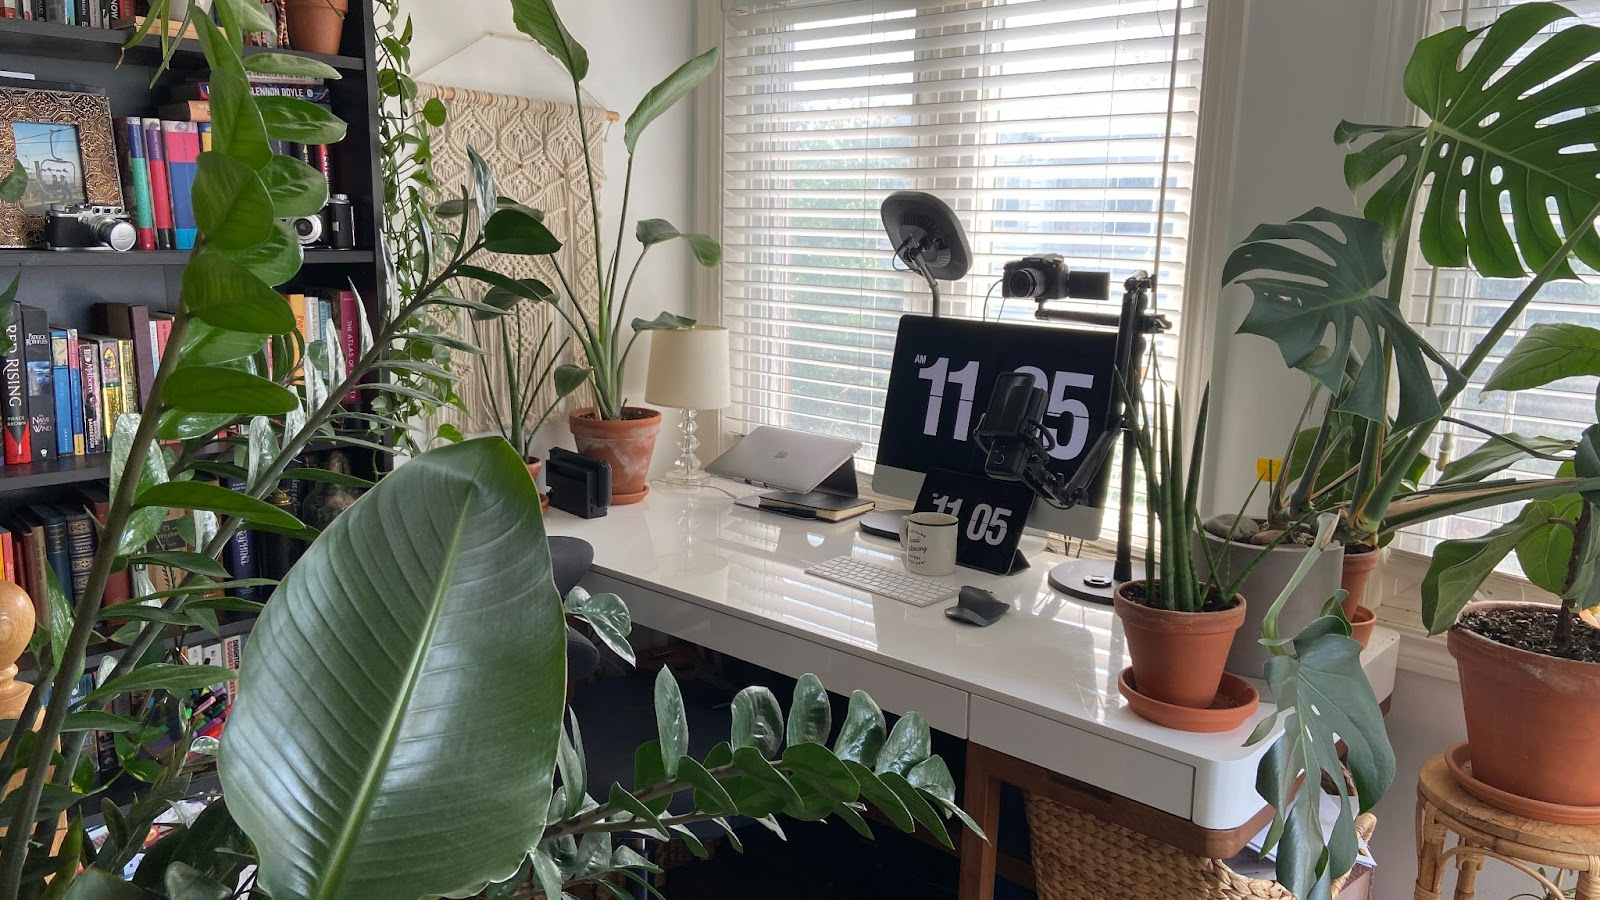 Remote work office setup in front of window with video camera over monitor and surrounded by many green plants